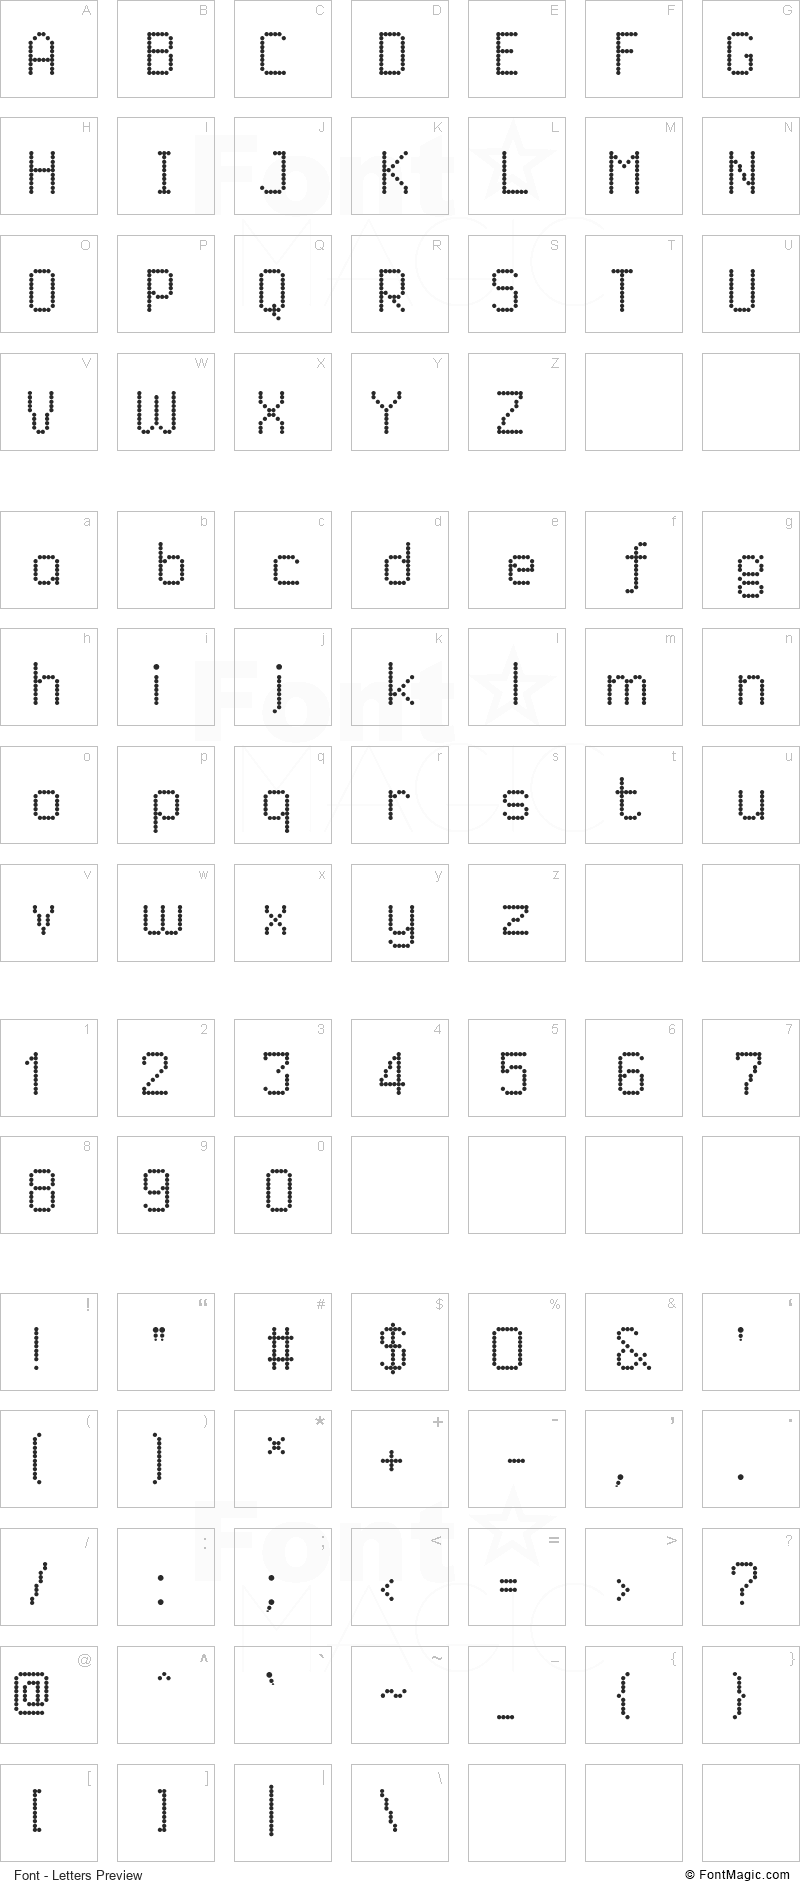 Dited Font - All Latters Preview Chart